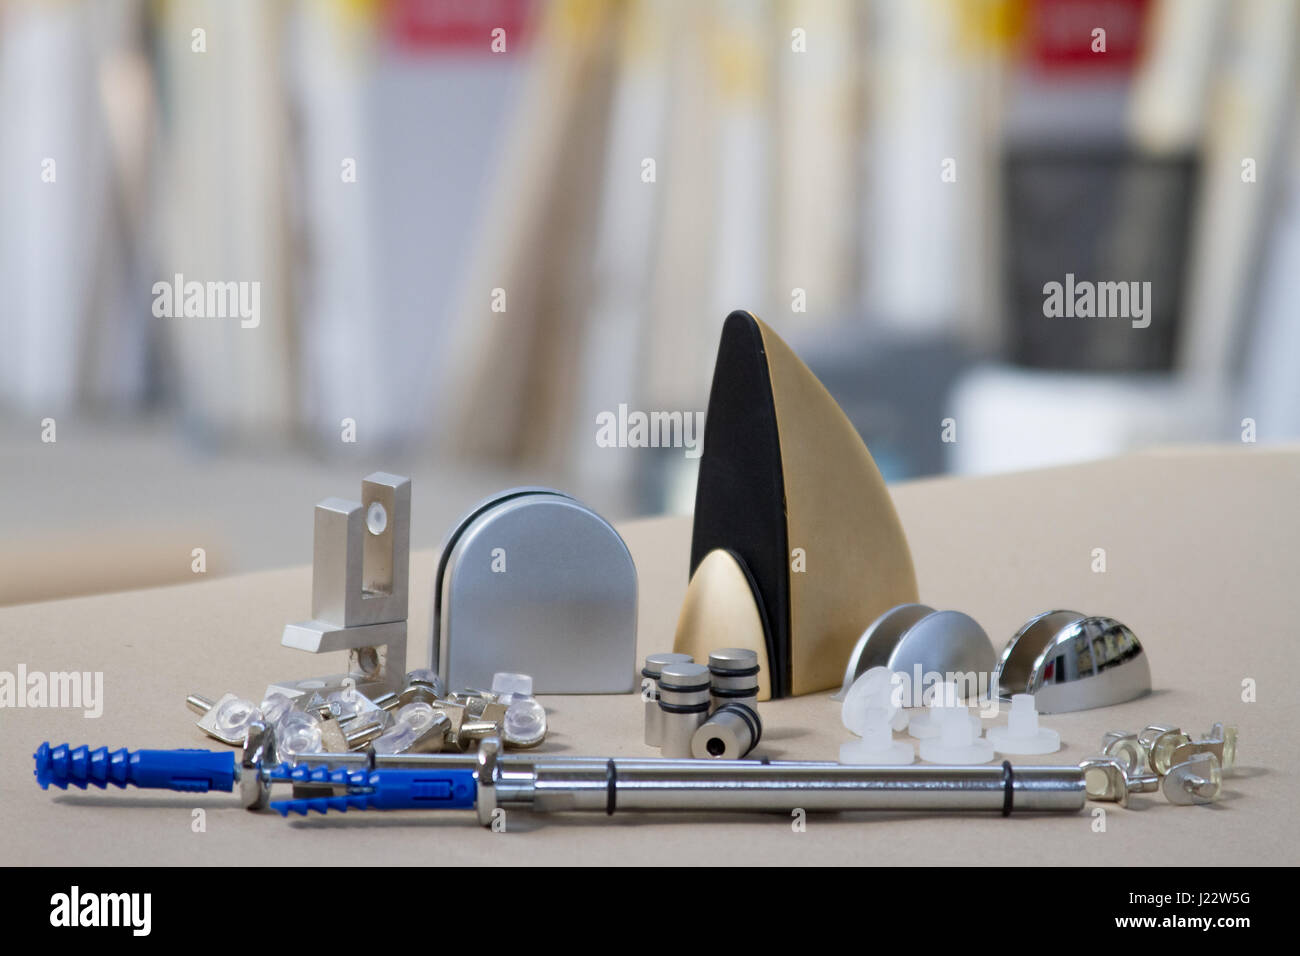 Mount for glass shelves or wood. Fasteners for furniture, shelves of different materials, different colors and shapes. - Stock Image